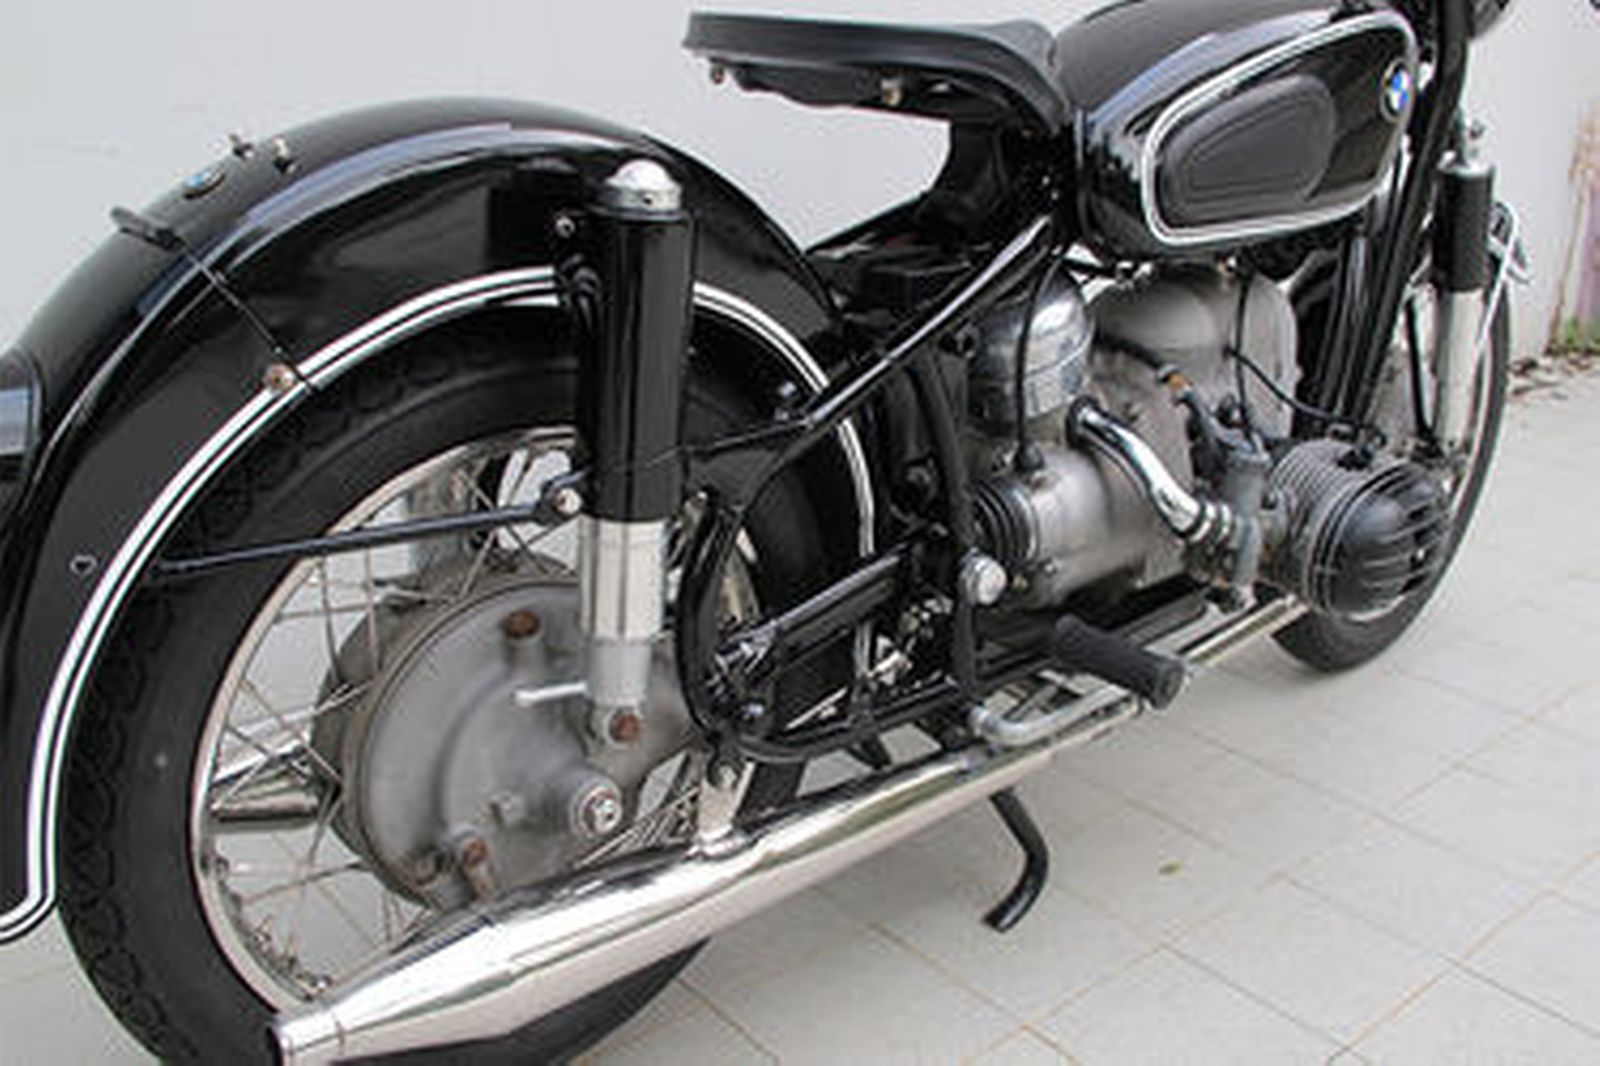 BMW R50 Motorcycle